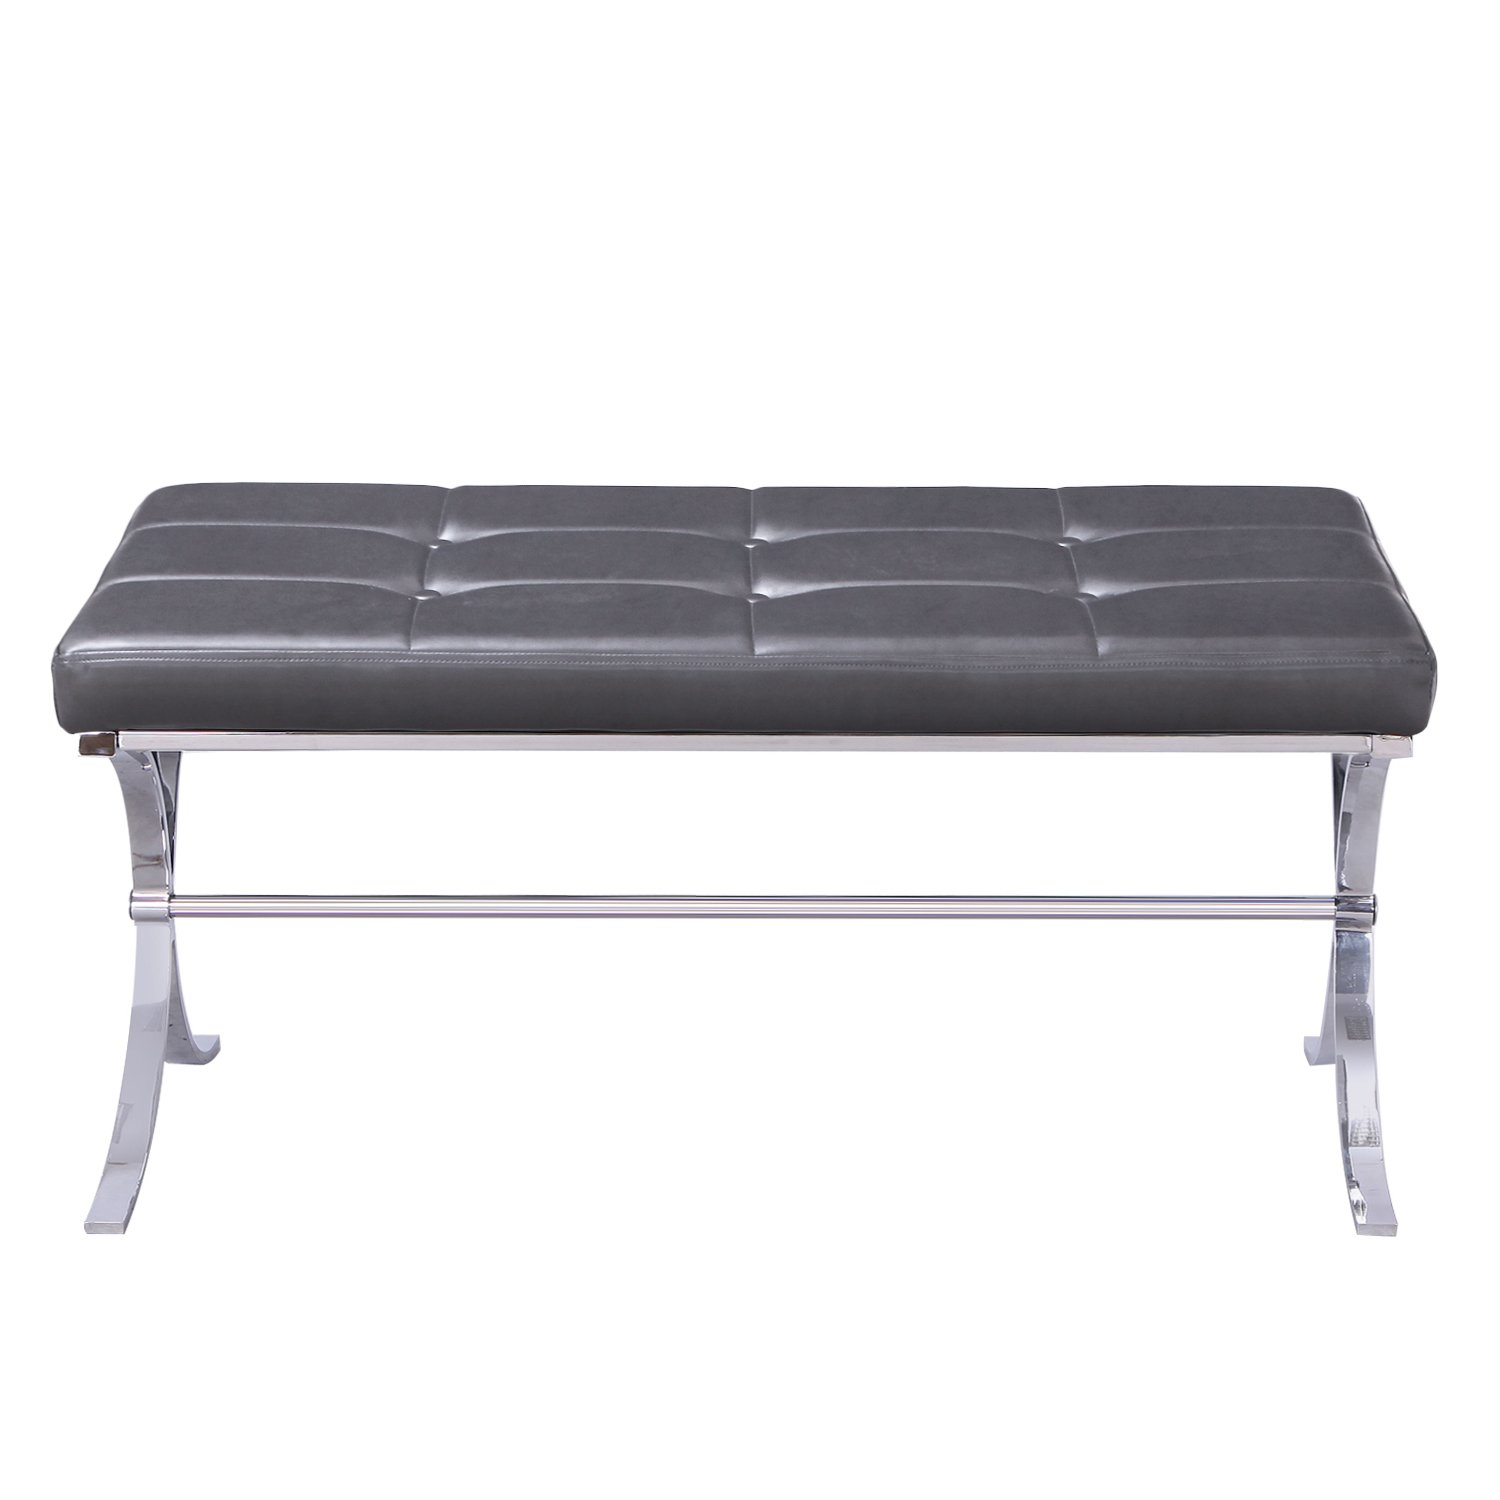 Metal Bench Entryway Footstool with Button Tufted PU  : 61Oa8g0FvHLSL1500 from www.ebay.com size 1500 x 1500 jpeg 92kB